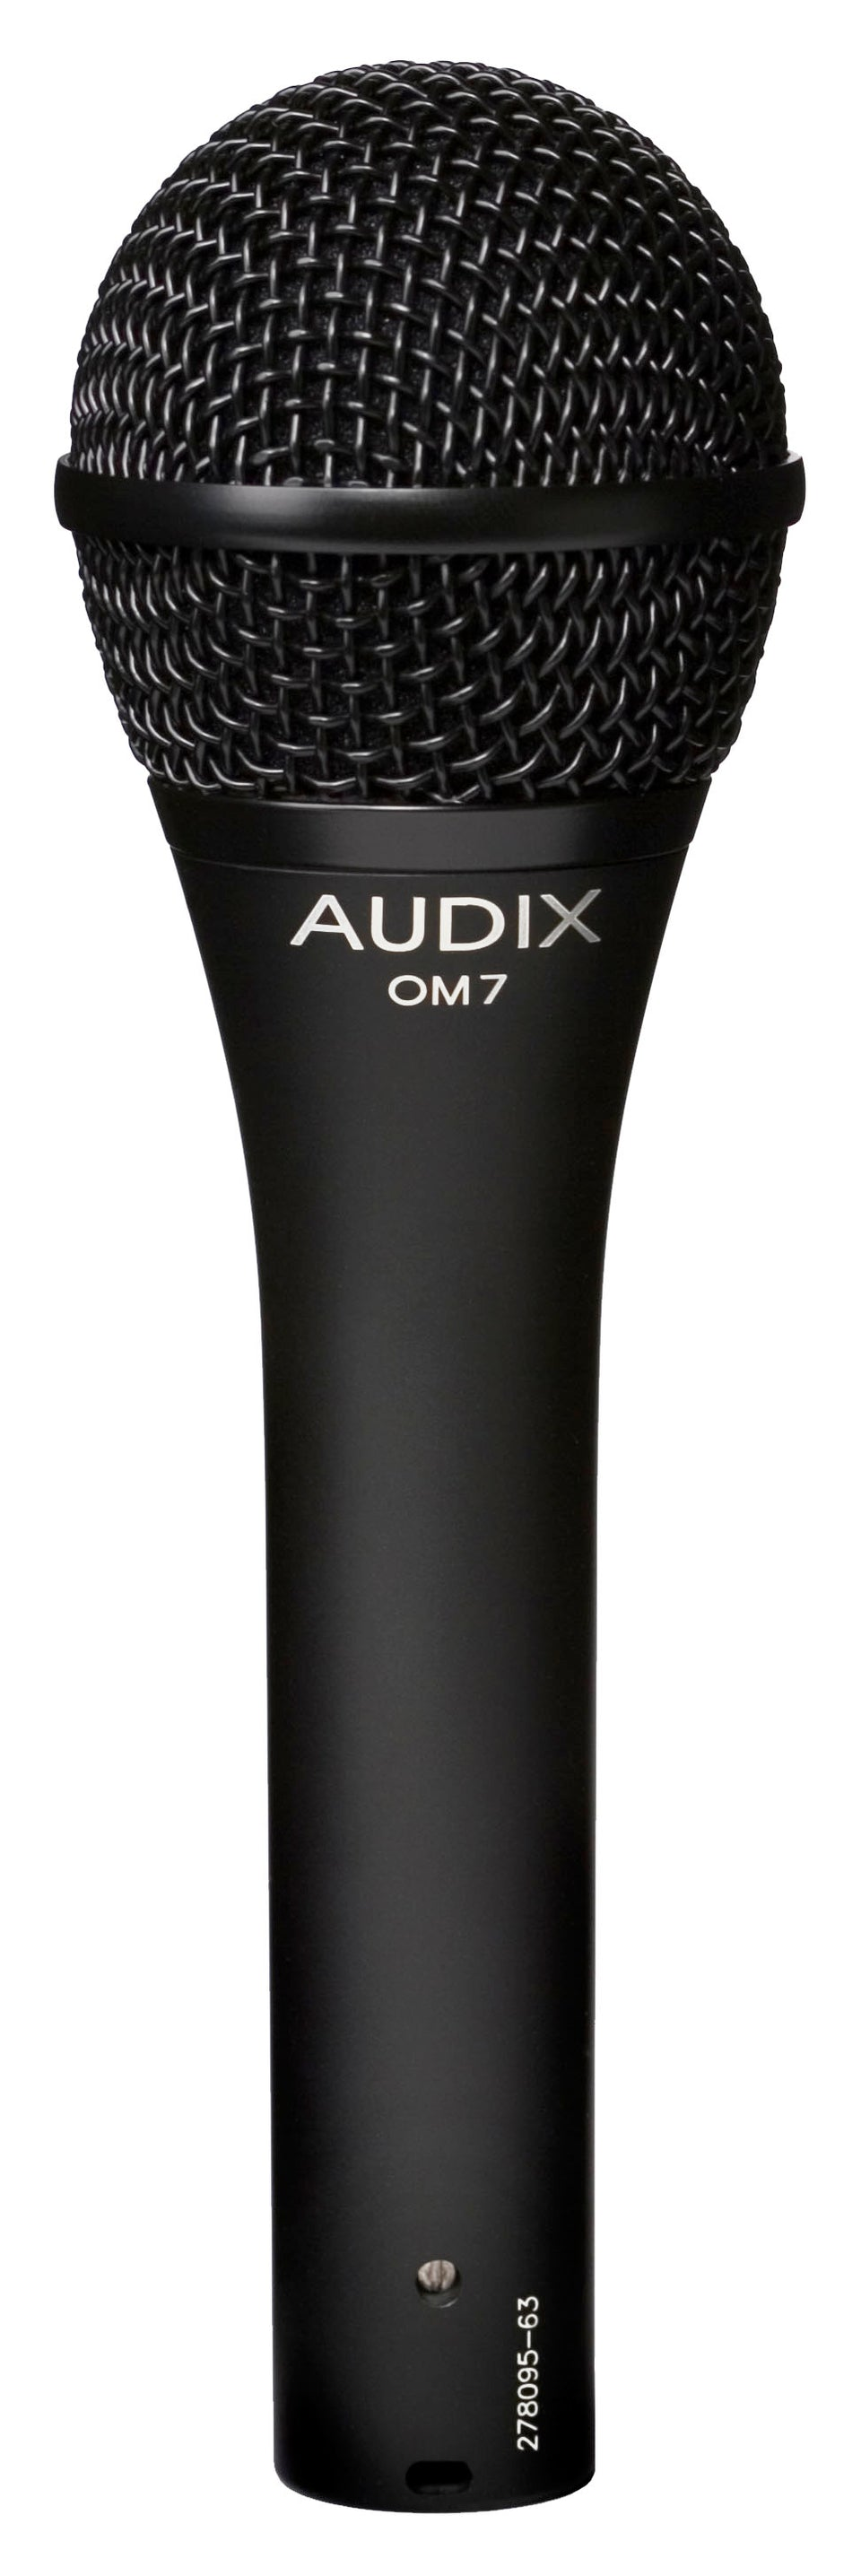 Audix OM7 Hypercardioid Dynamic Touring Vocal Microphone